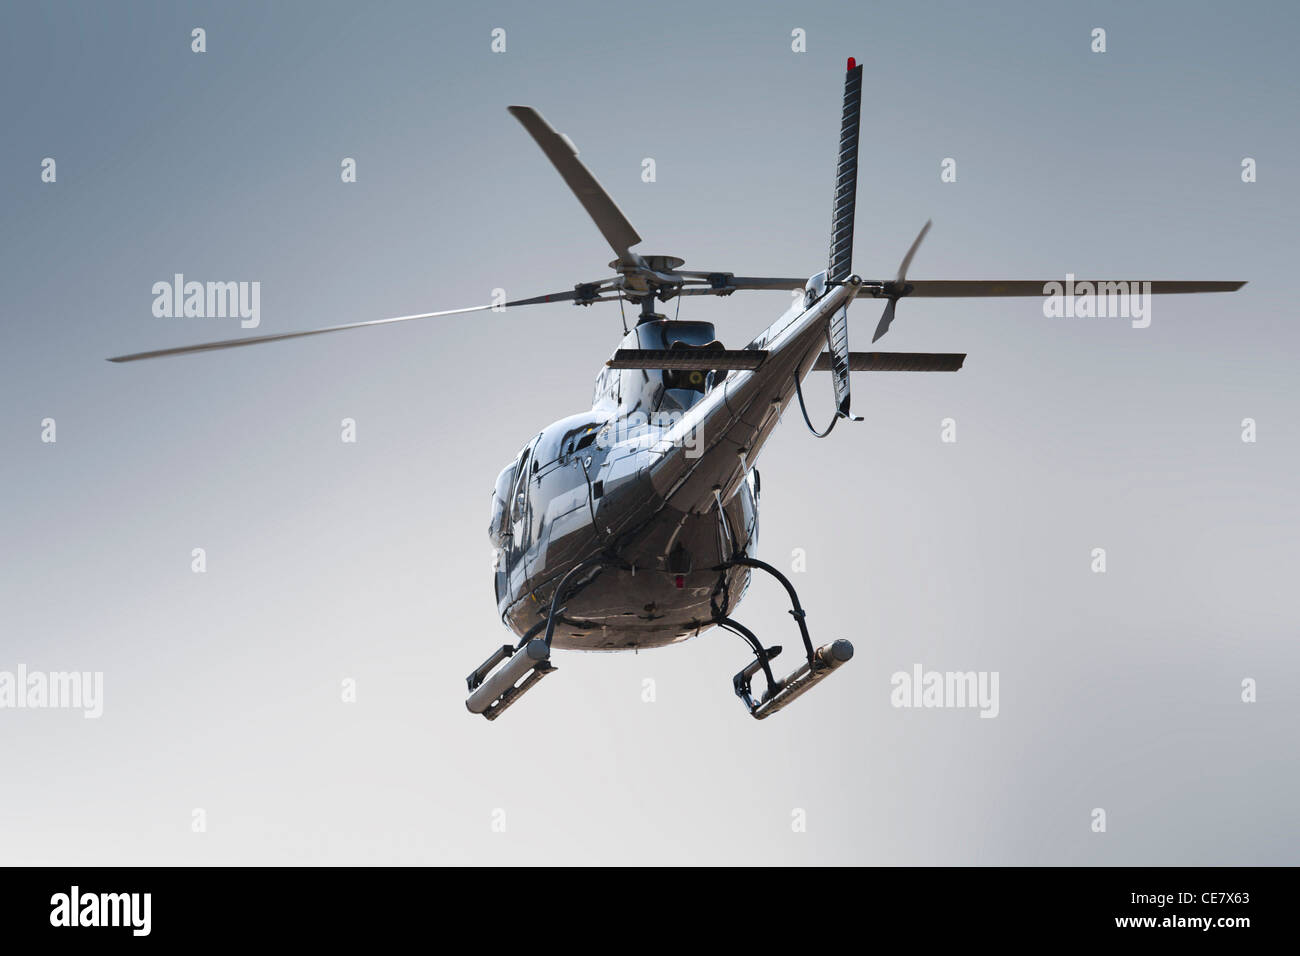 Backside of isolated helicopter - Stock Image